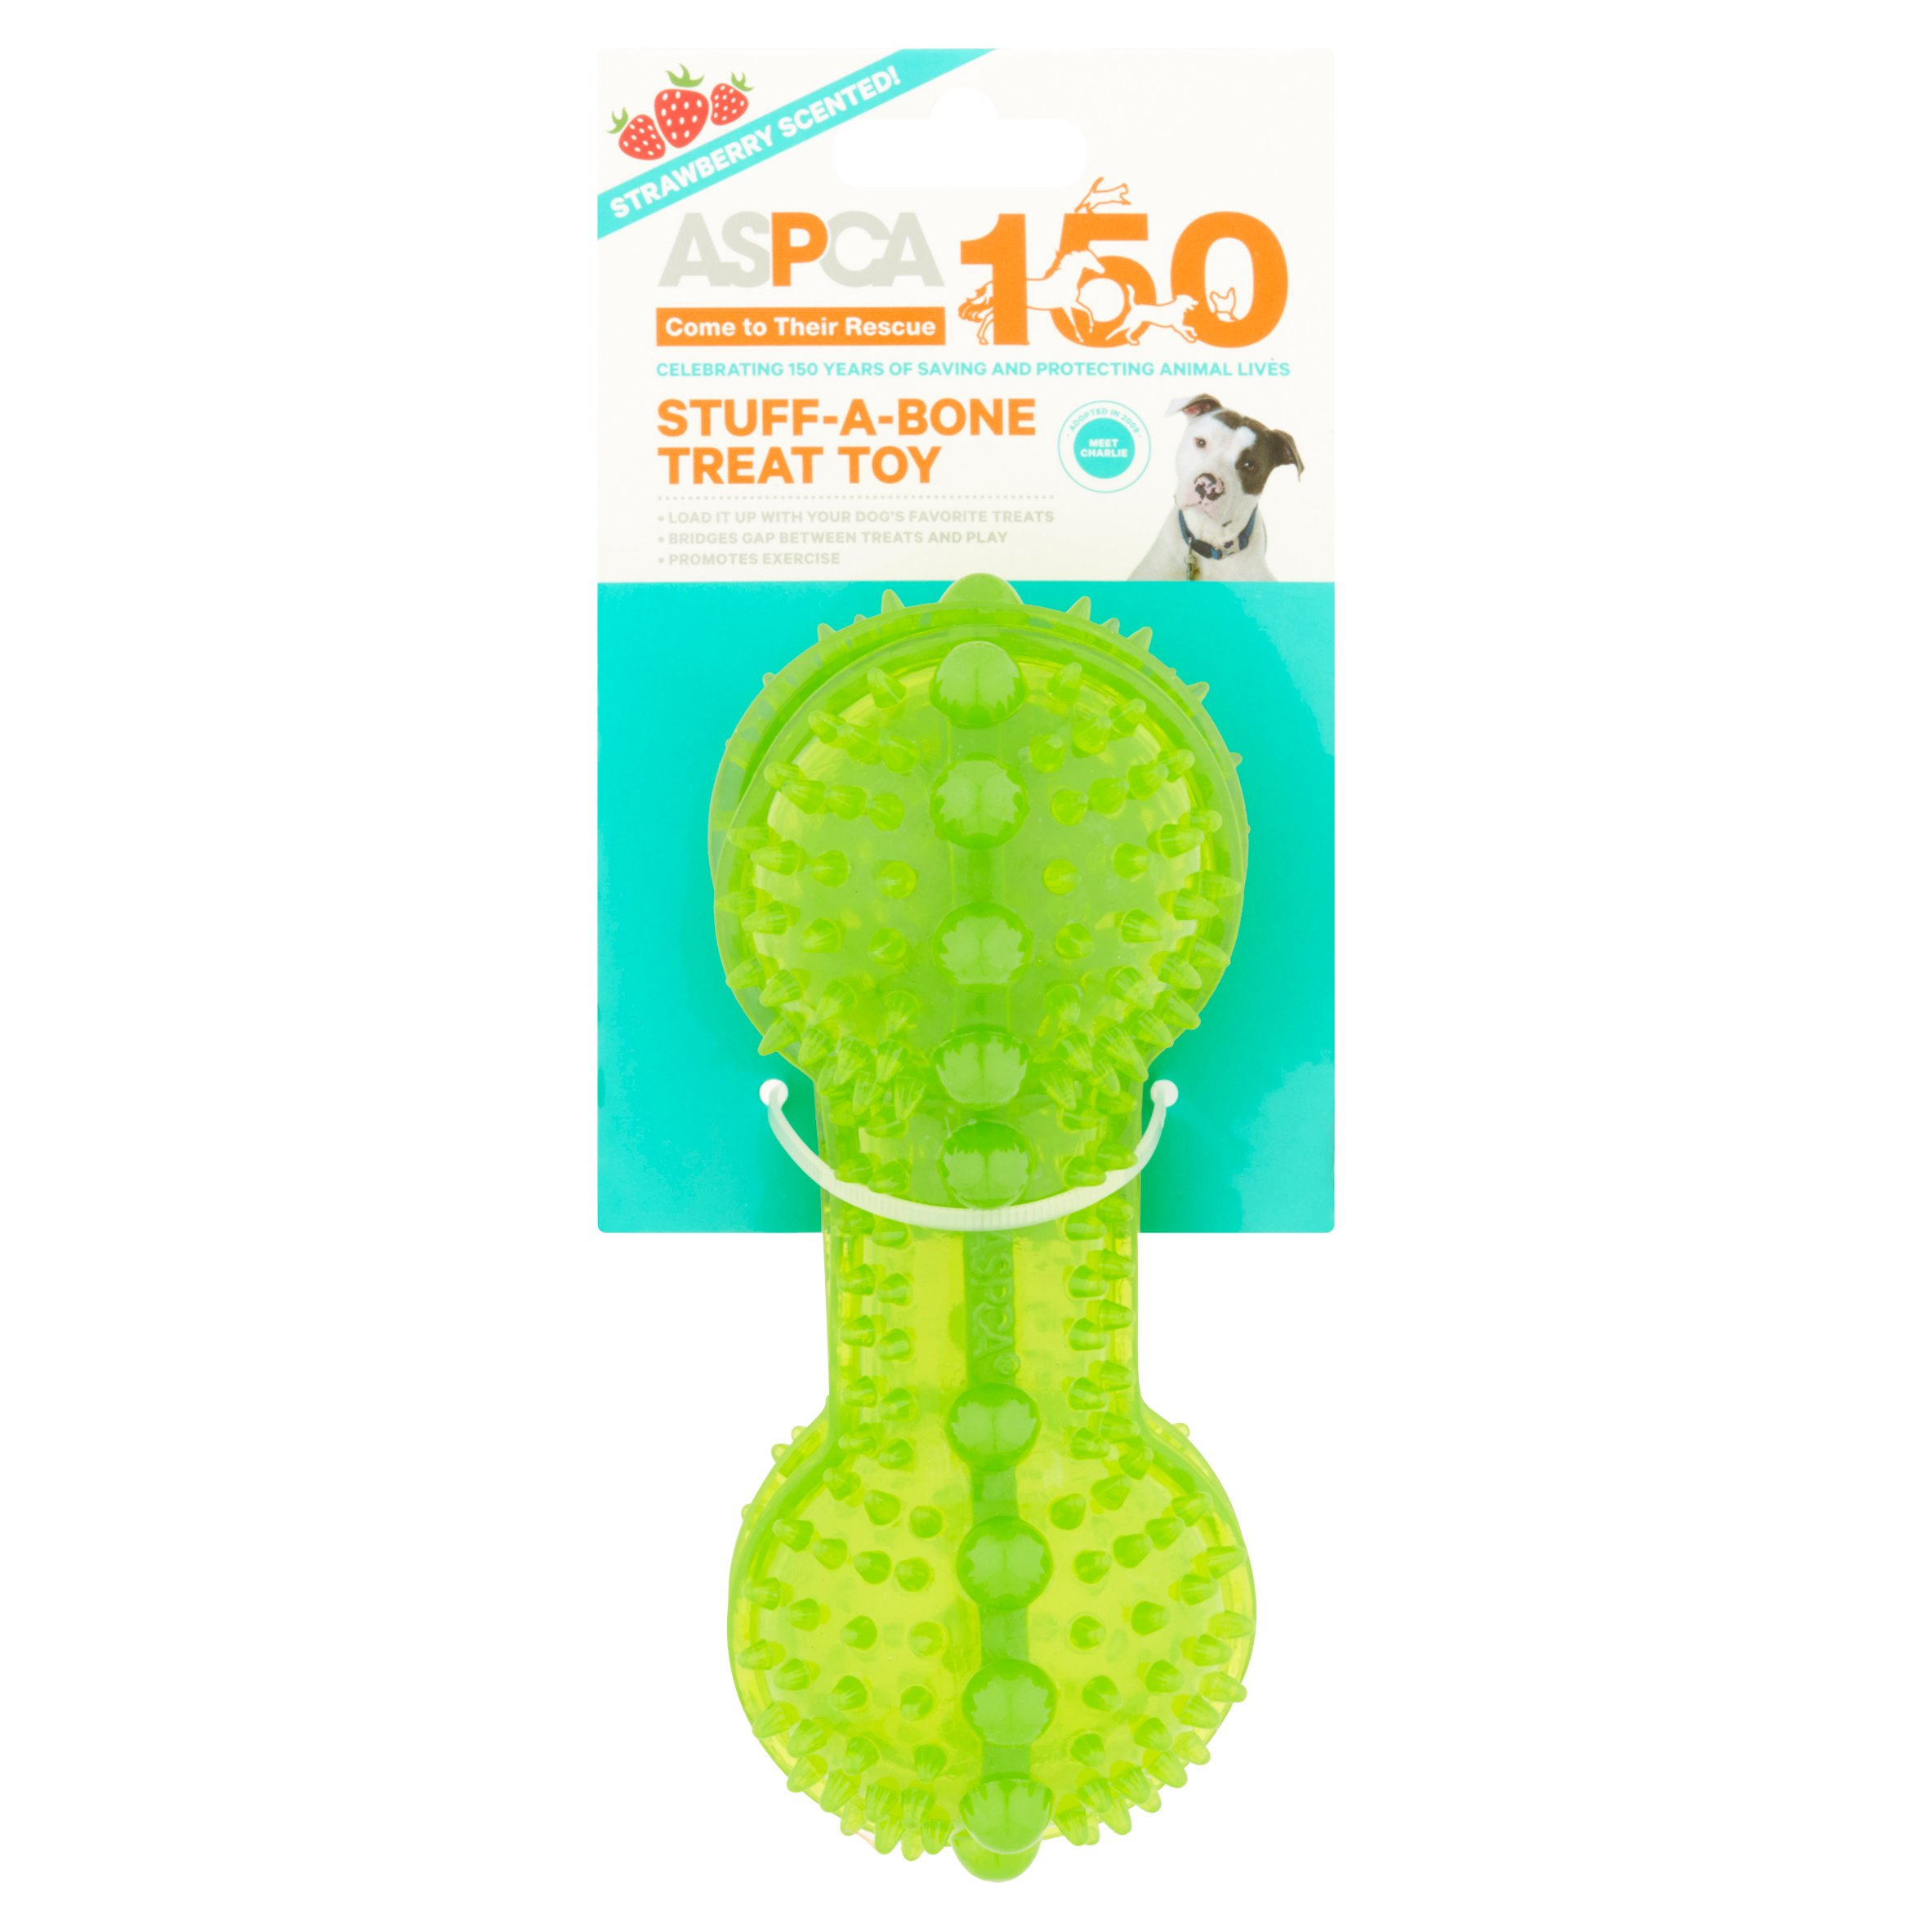 ASPCA Stuff-A-Bone Treat Toy